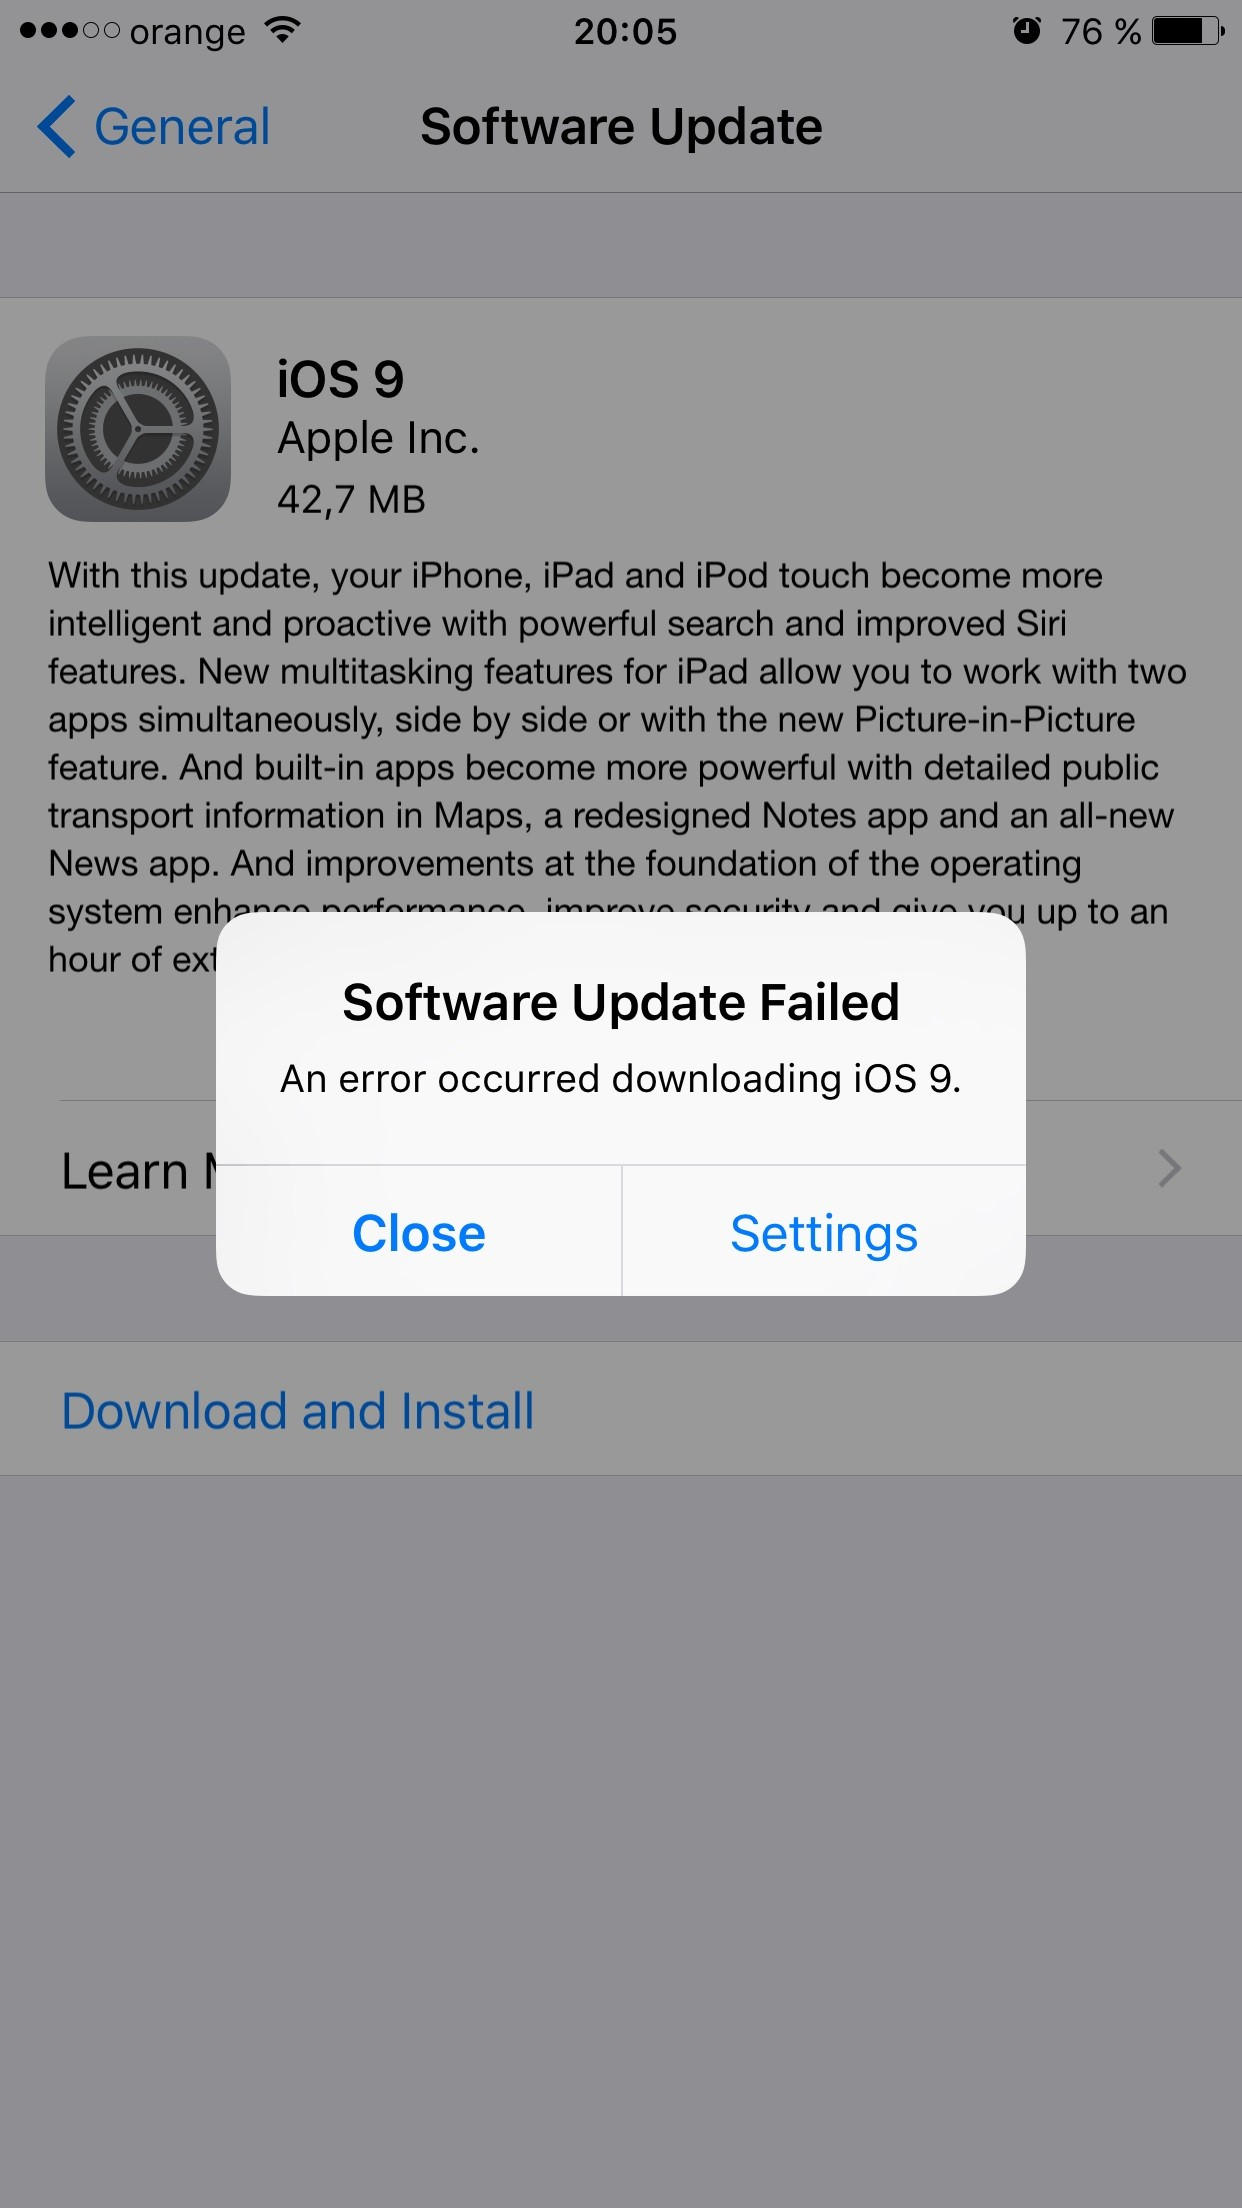 Garmin Update Software >> iOS 9 Download Issues: Software Update Failed, Error Occurred Downloading iOS 9